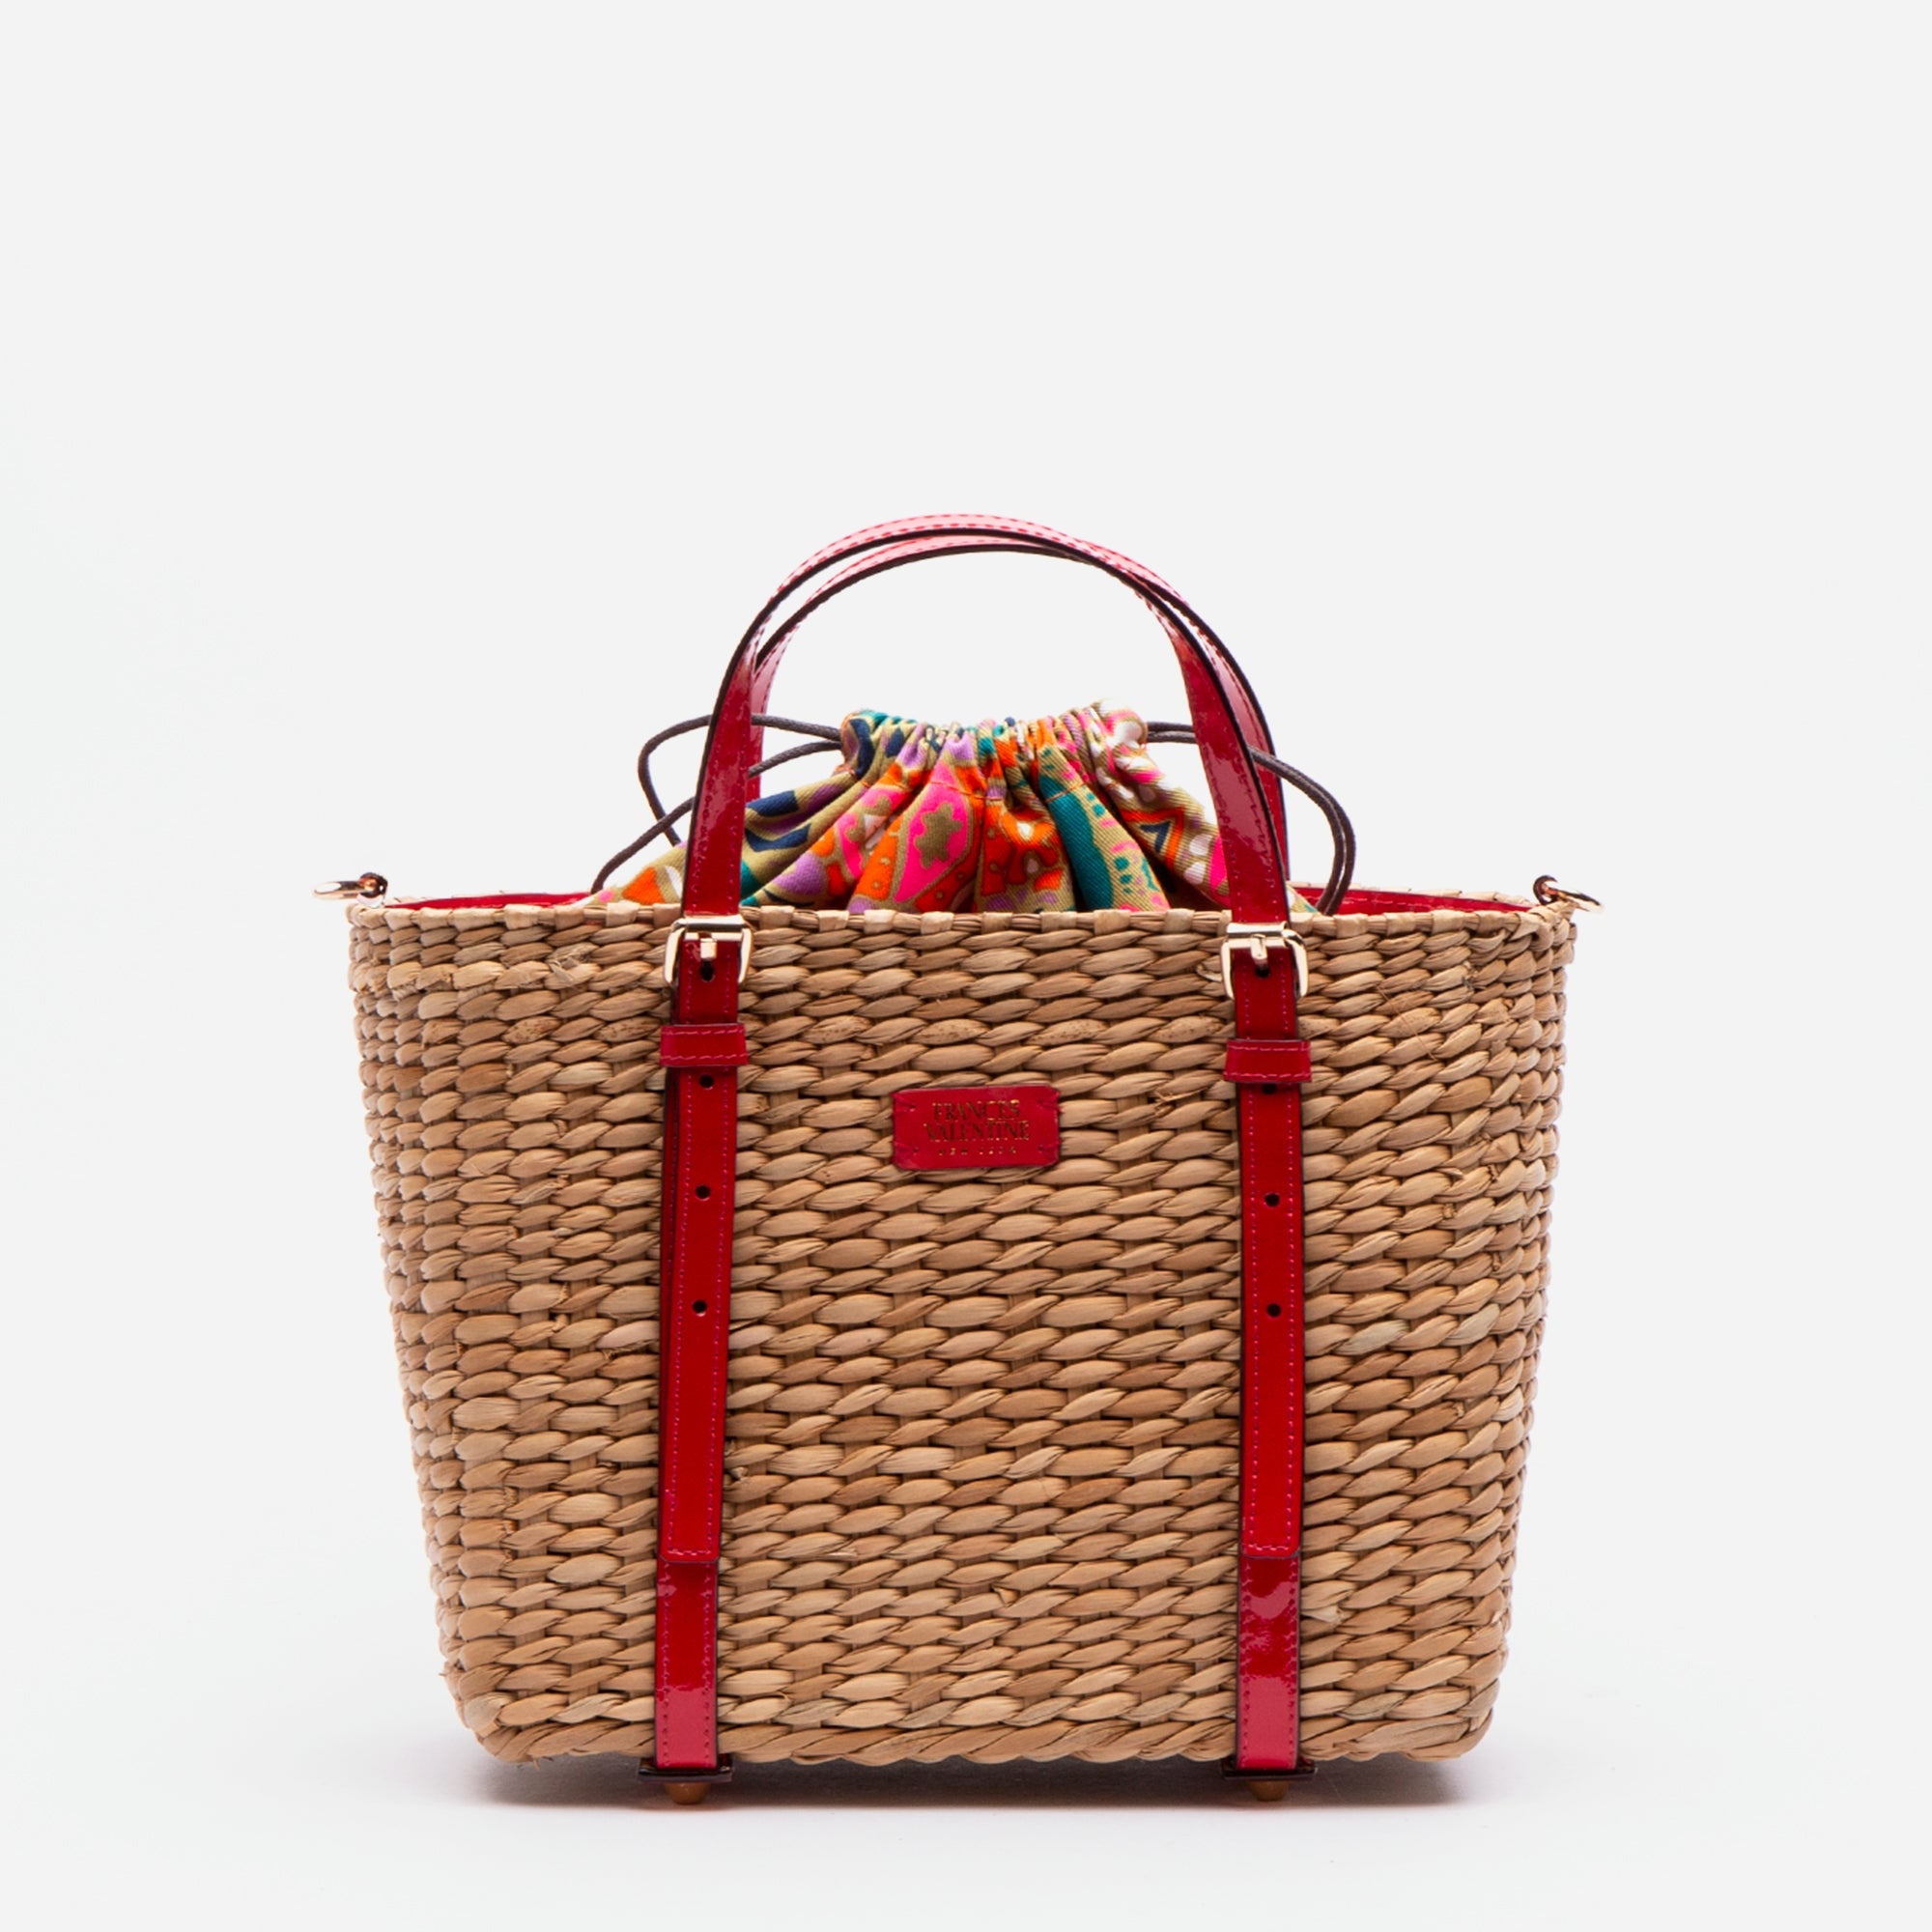 Small Woven Basket Tote Patent Red - Frances Valentine